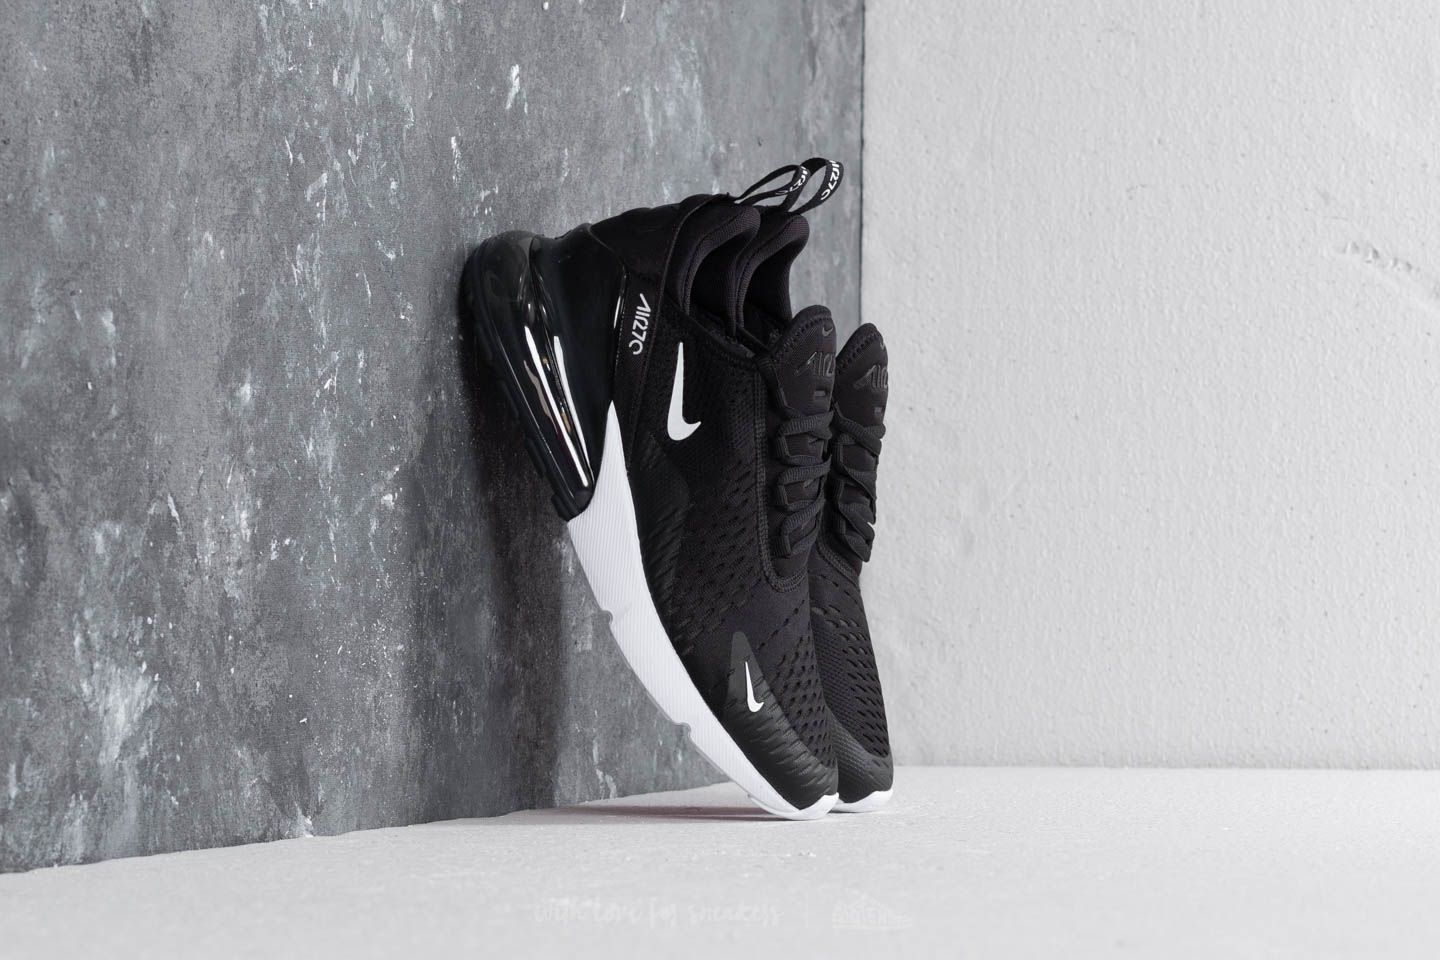 Nike Air Max 270 Black/ Anthracite-White